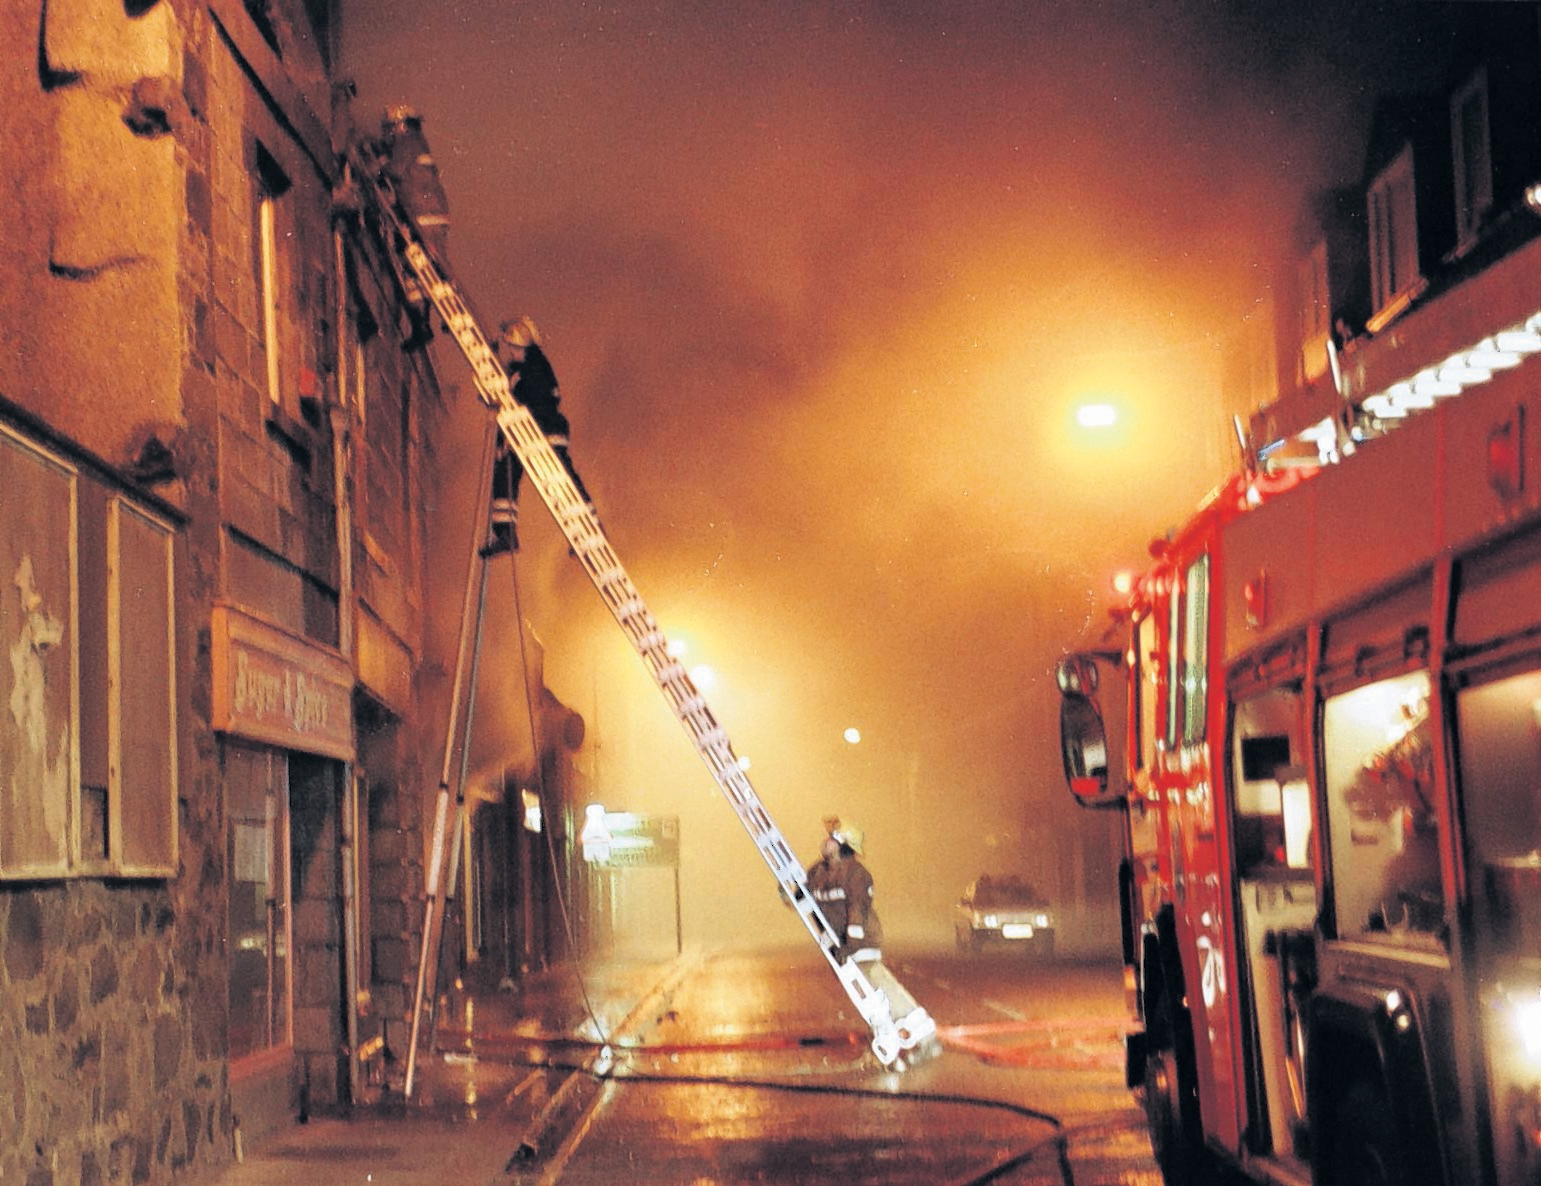 Firefighters at the scene of the fatal fire in Fraserburgh in 1998